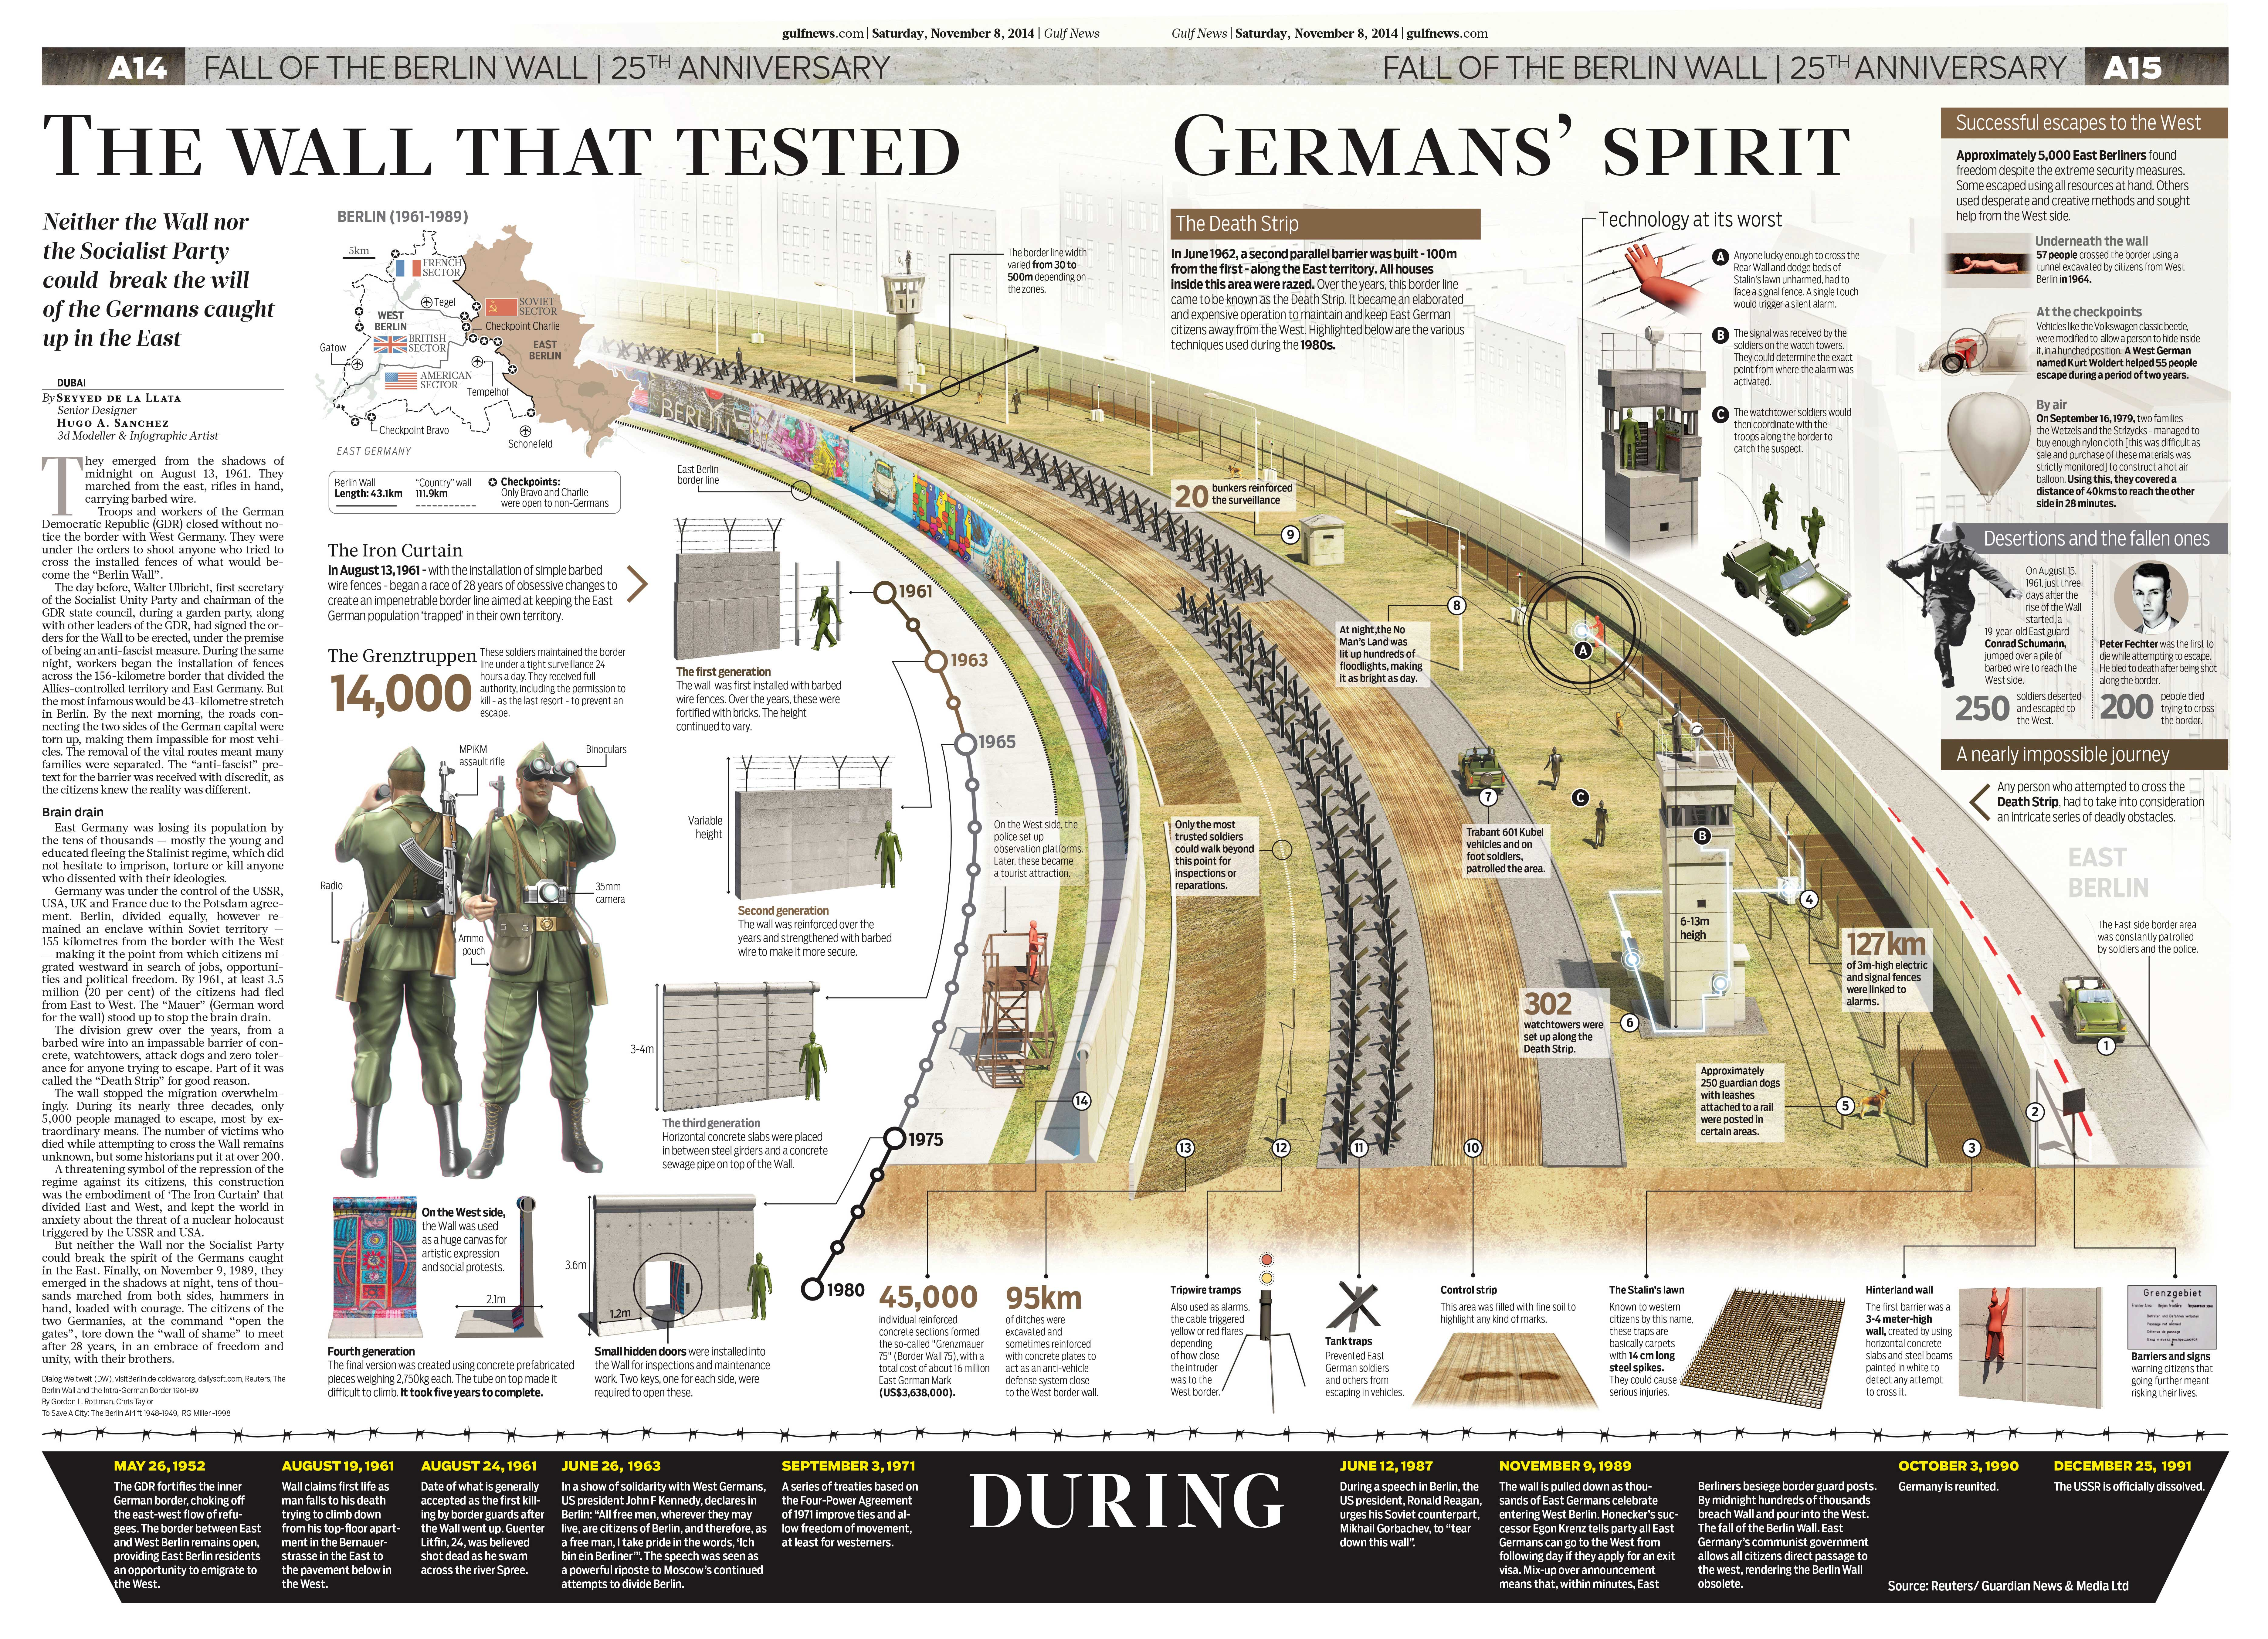 Infographic about the Berlin Wall, published by Gulf News to mark the 25th anniversary of the Wall's fall in 2014.